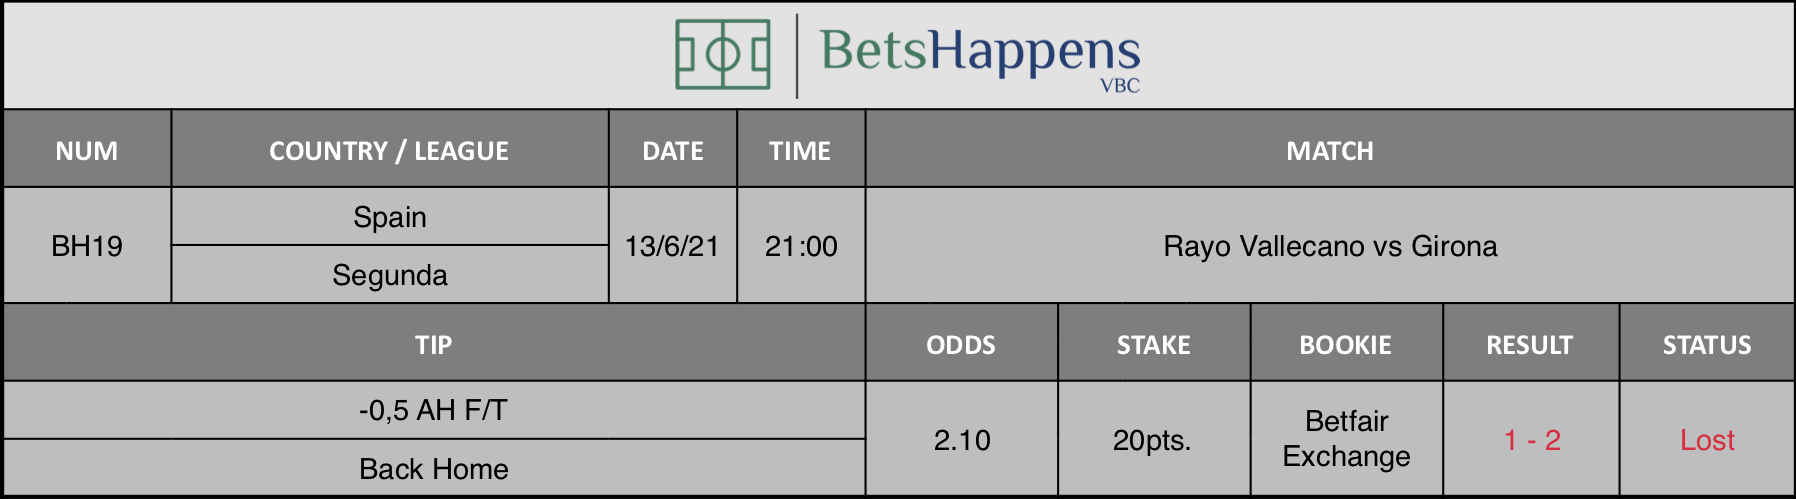 Results of our tip for the Rayo Vallecano vs Girona Match -0,5 AH F/T Back Home is recommended.